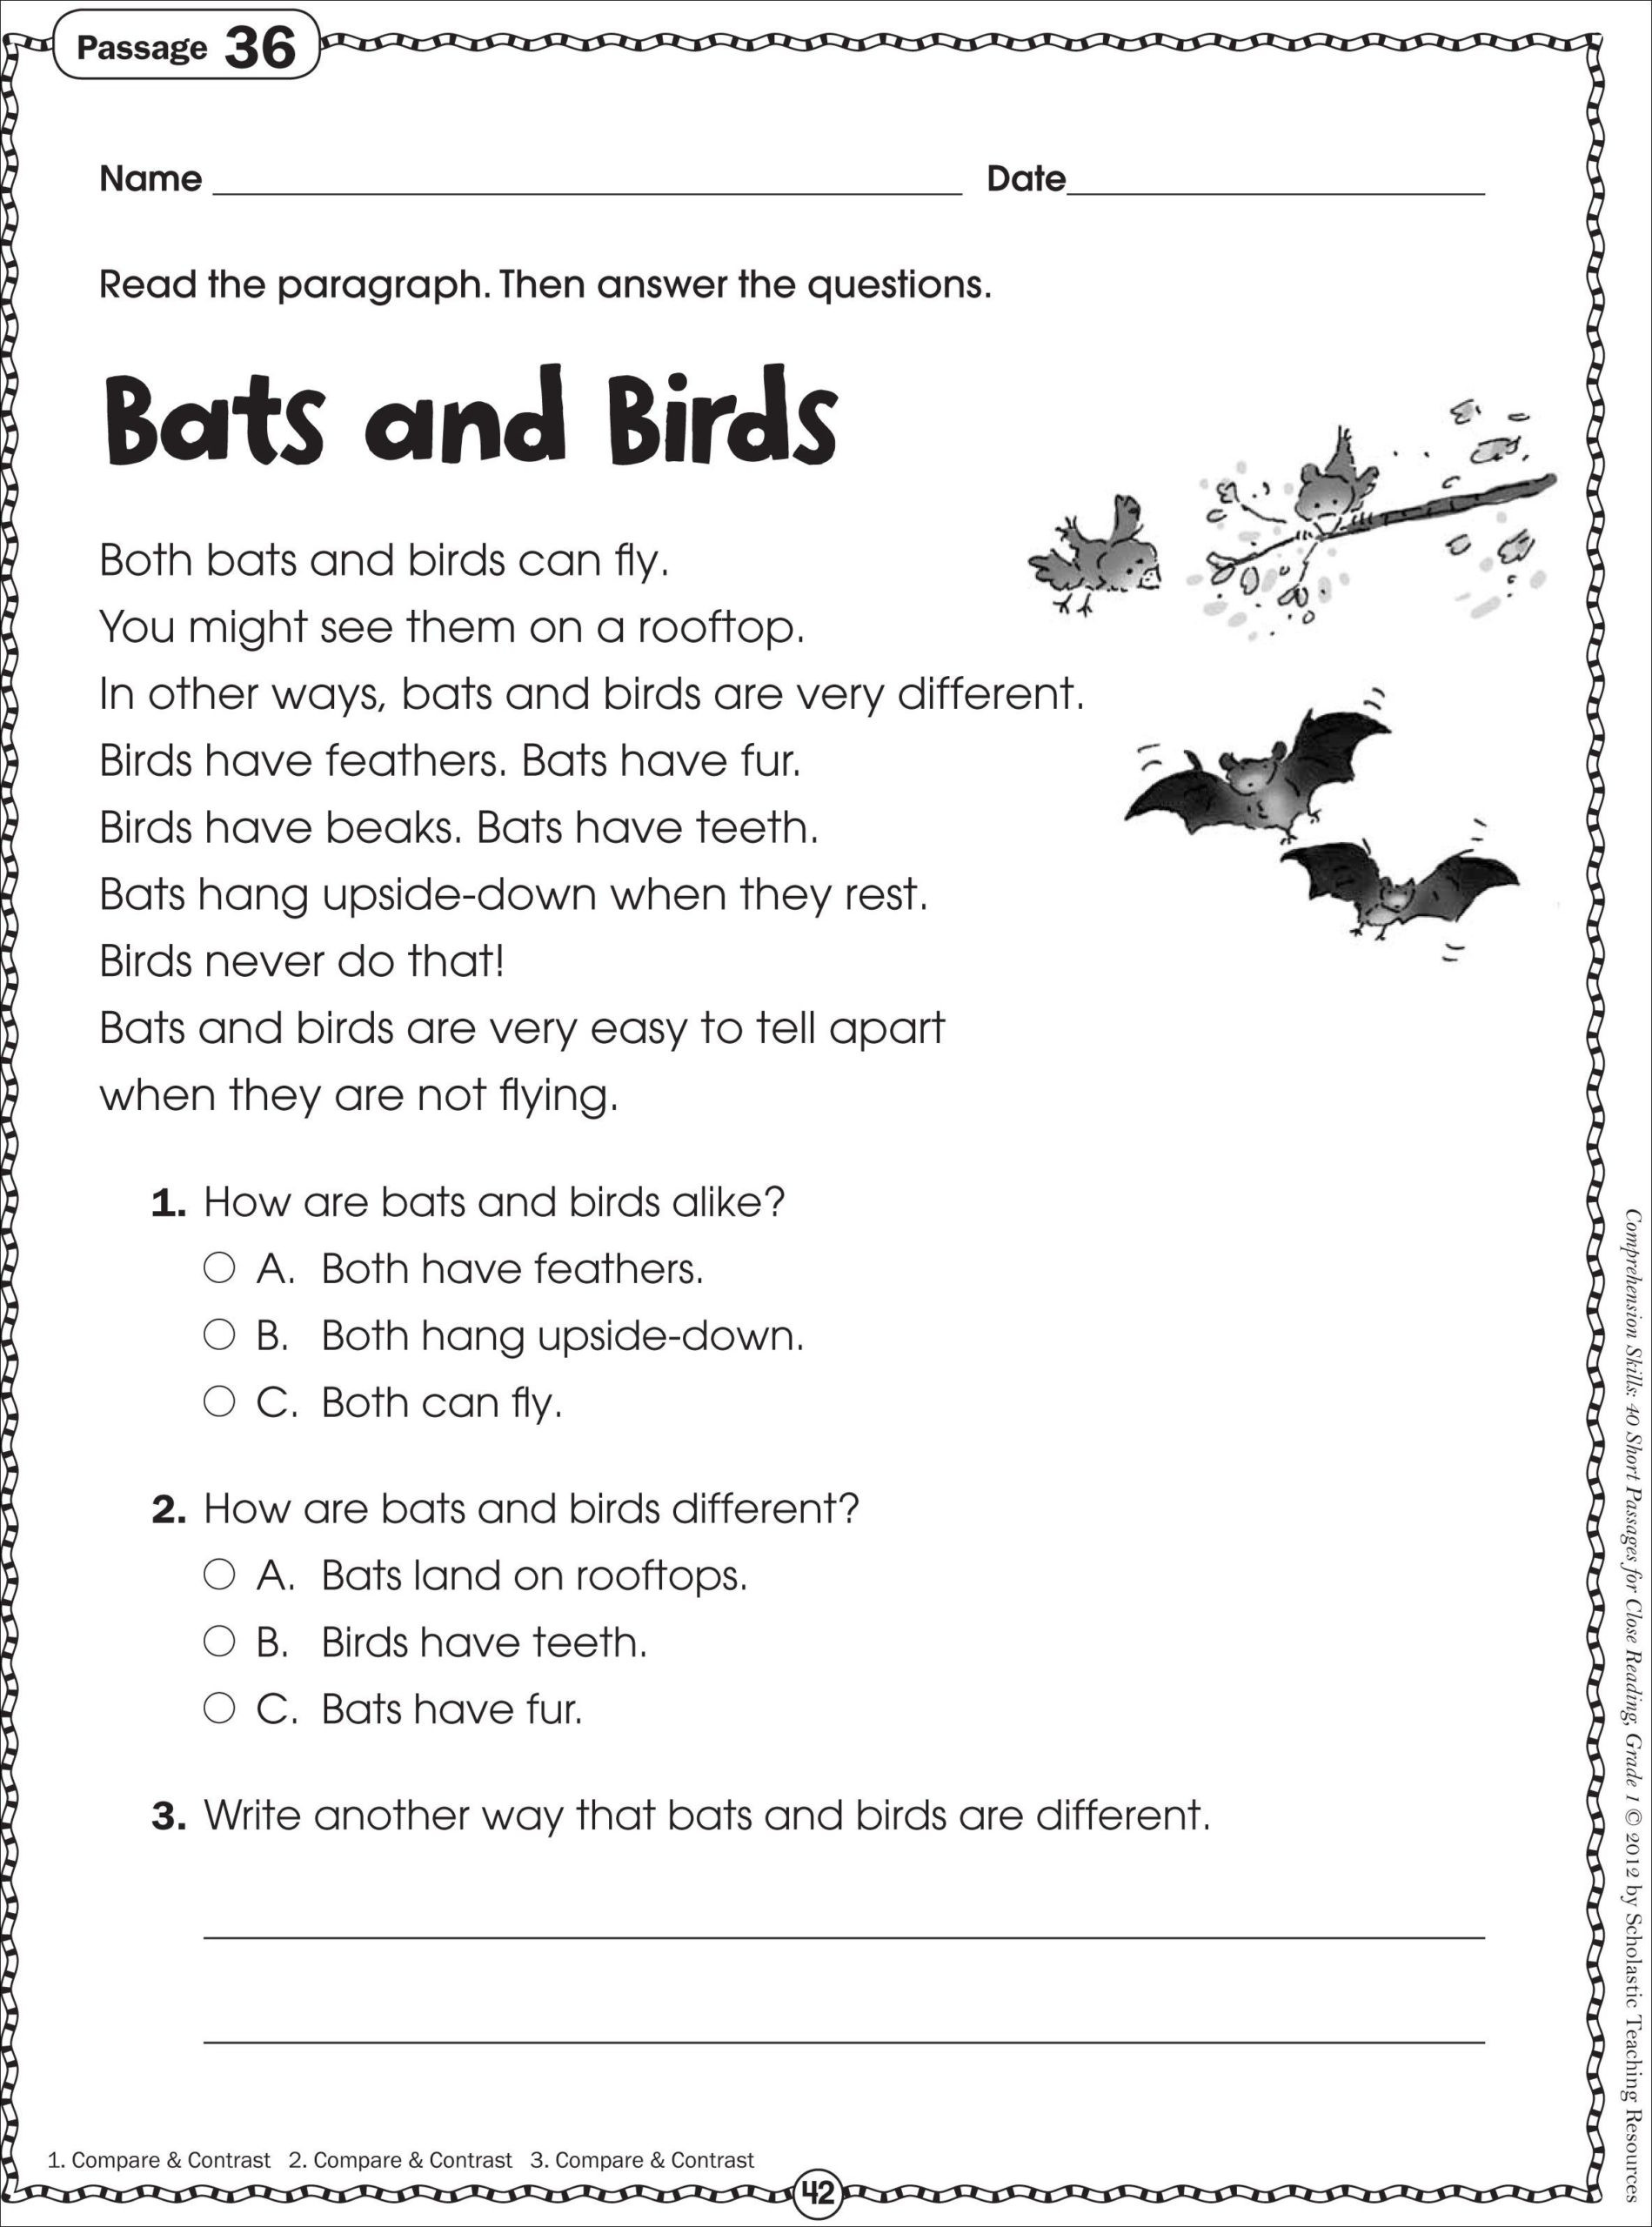 Reading Comprehension Worksheets Kindergarten Free Printable Reading Prehension Worksheets for